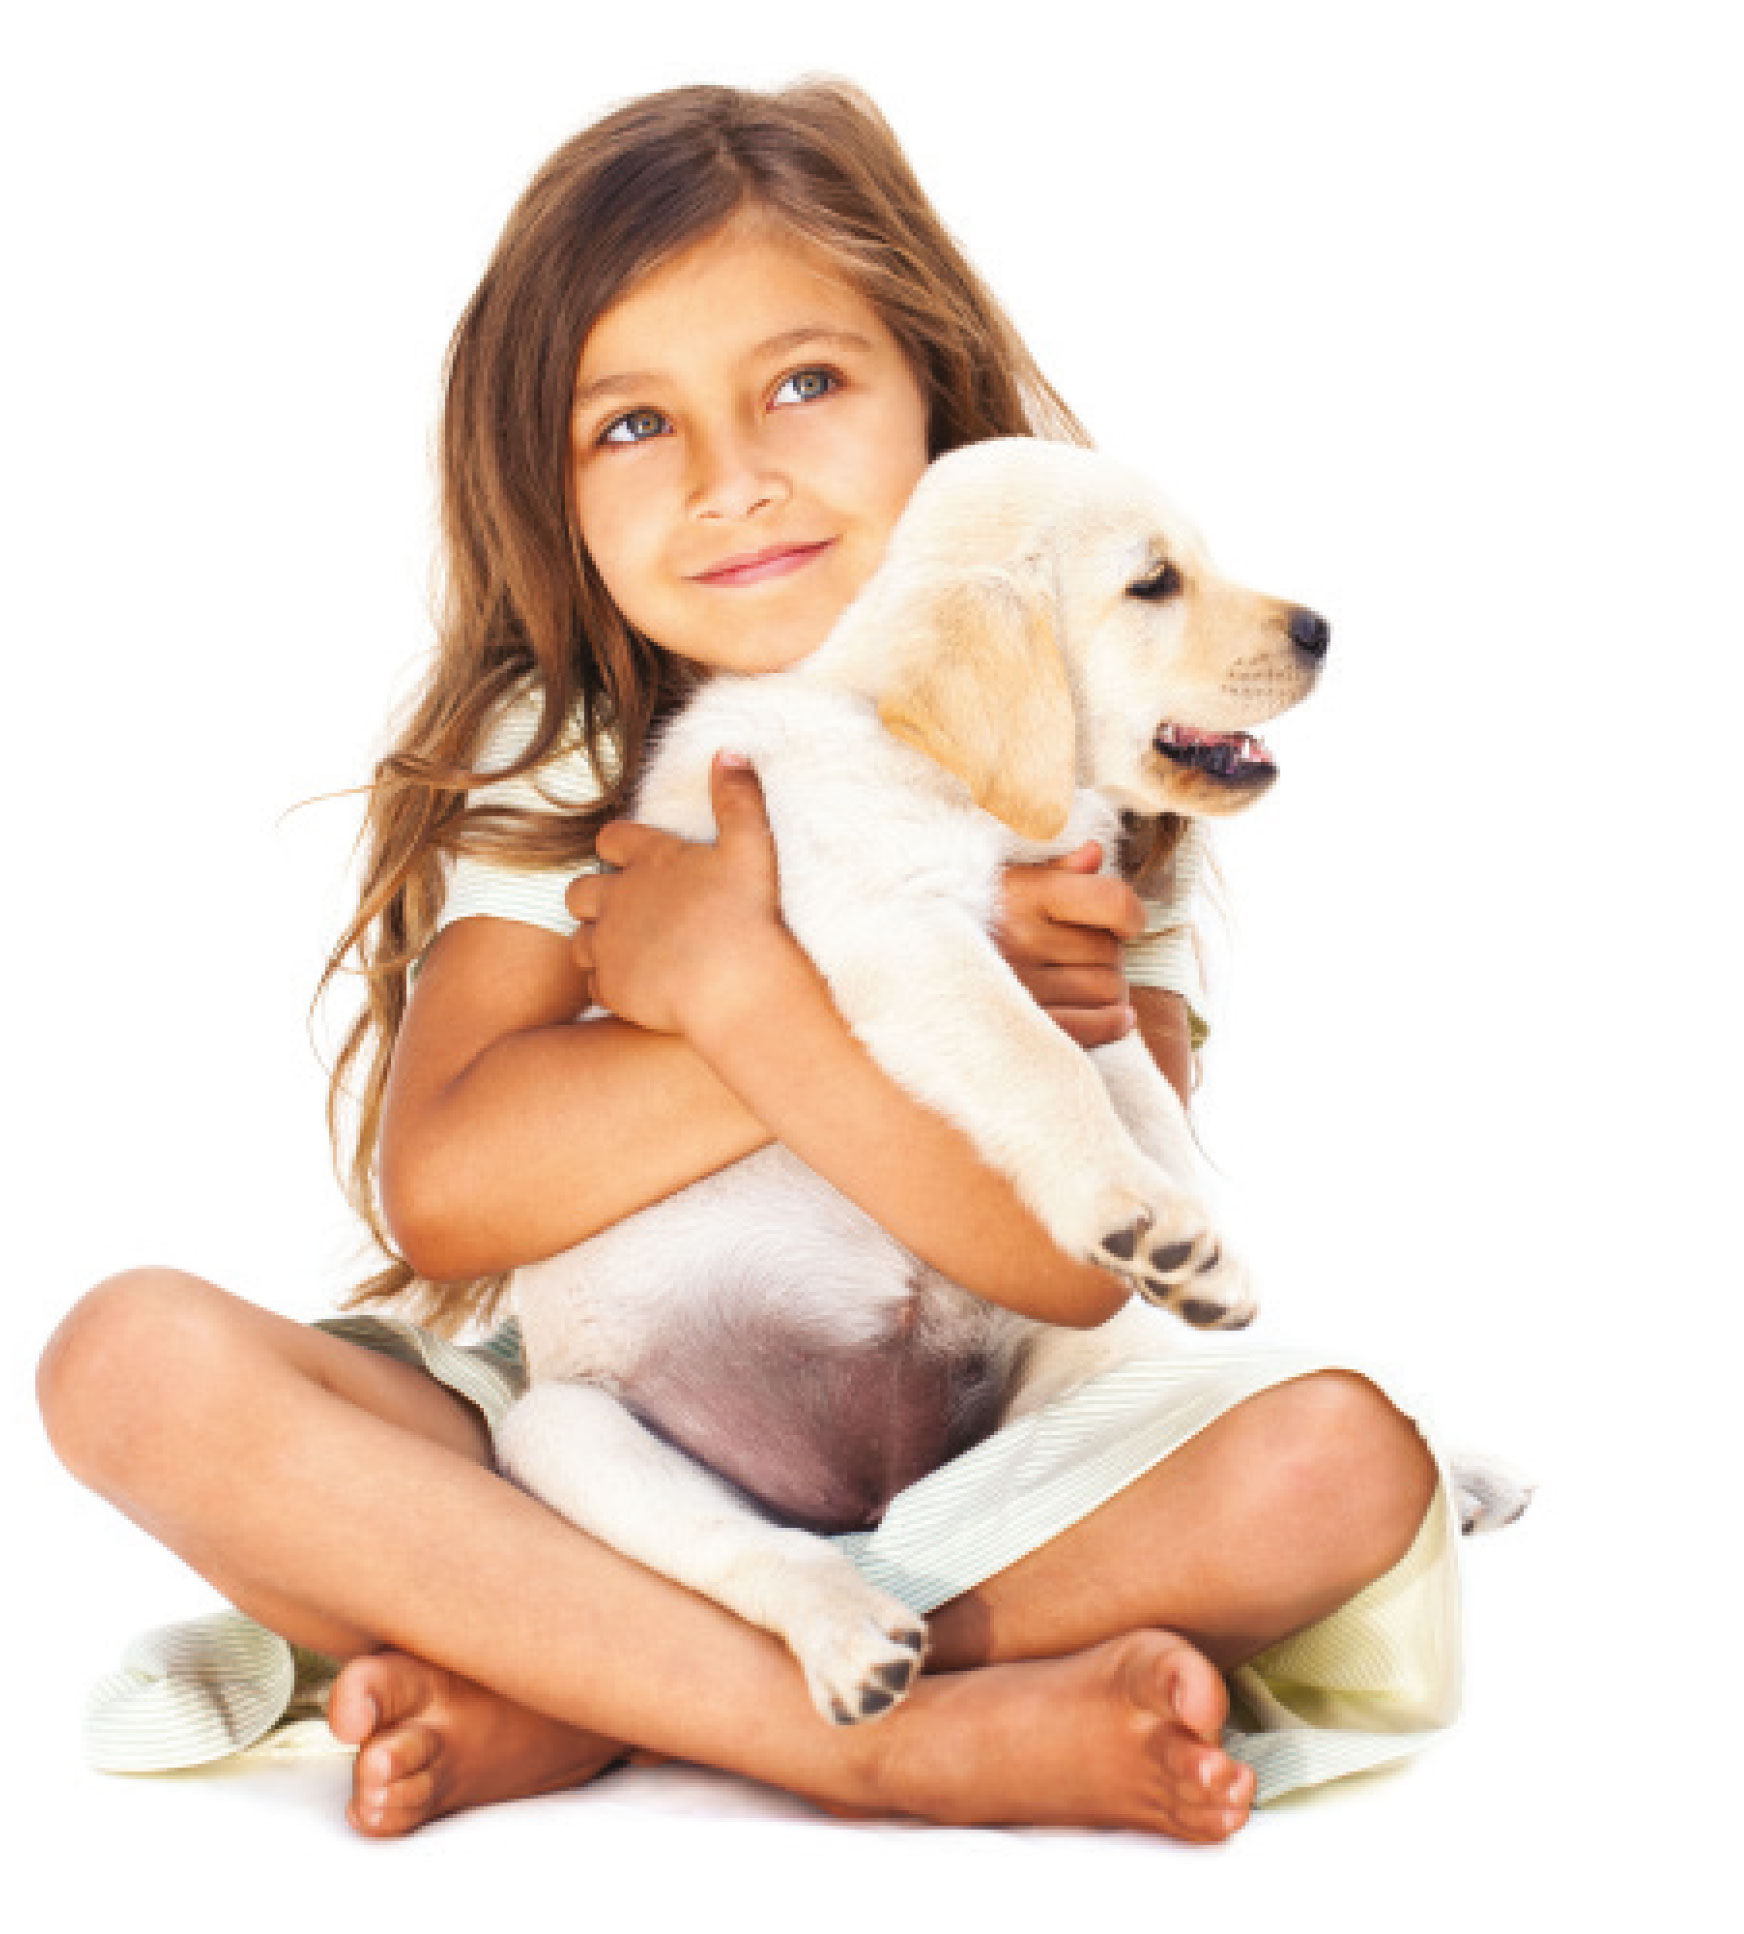 A young girl sitting cross legged on the floor cuddling a labrador puppy